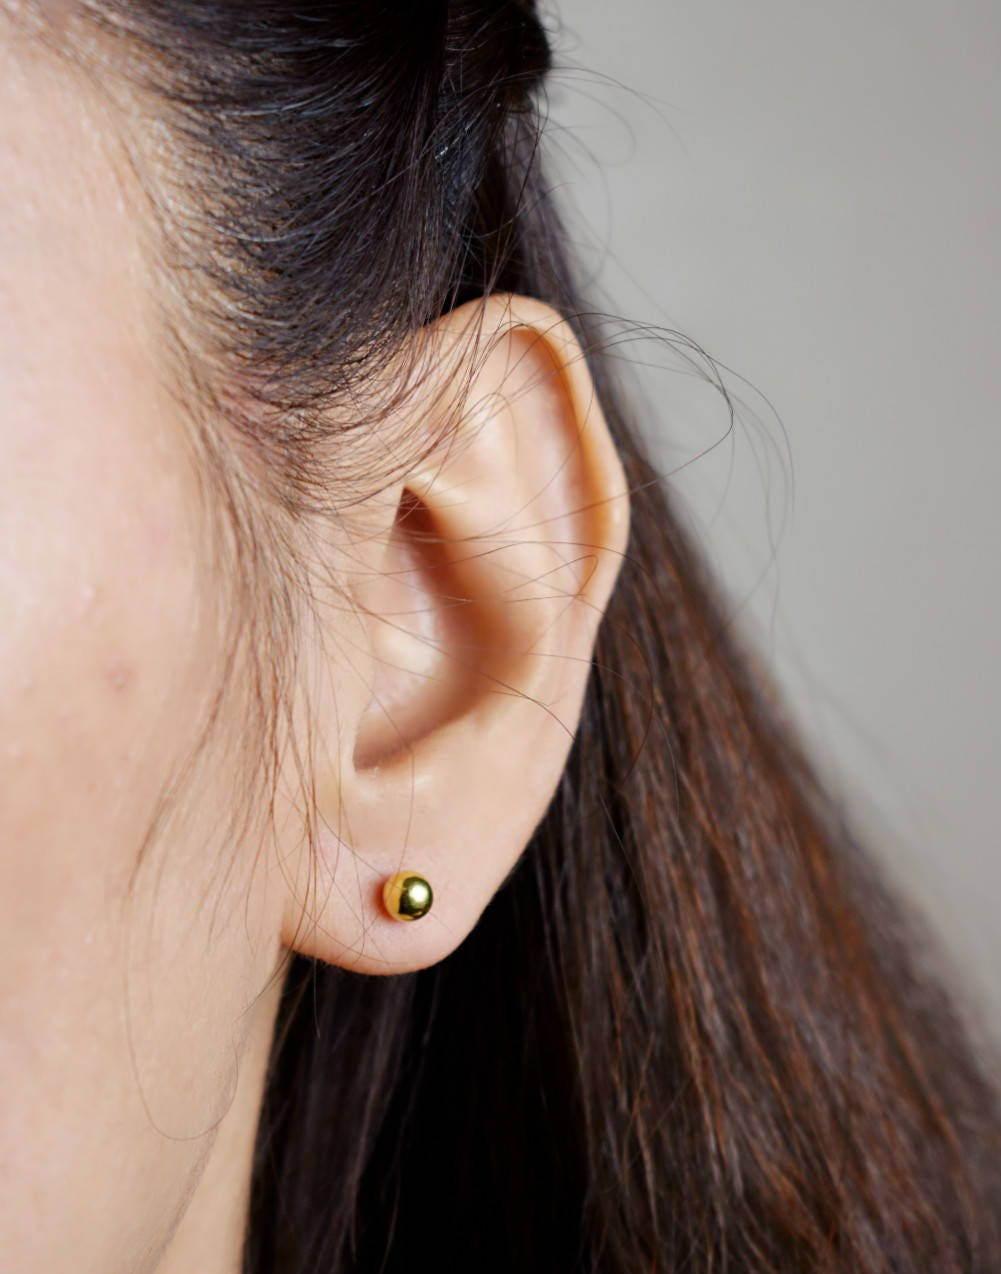 studs second helix piercings cuff cuffs healing beautiful triple stud beauty astronomy ear earrings and stars moon from piercing double constellation hoop